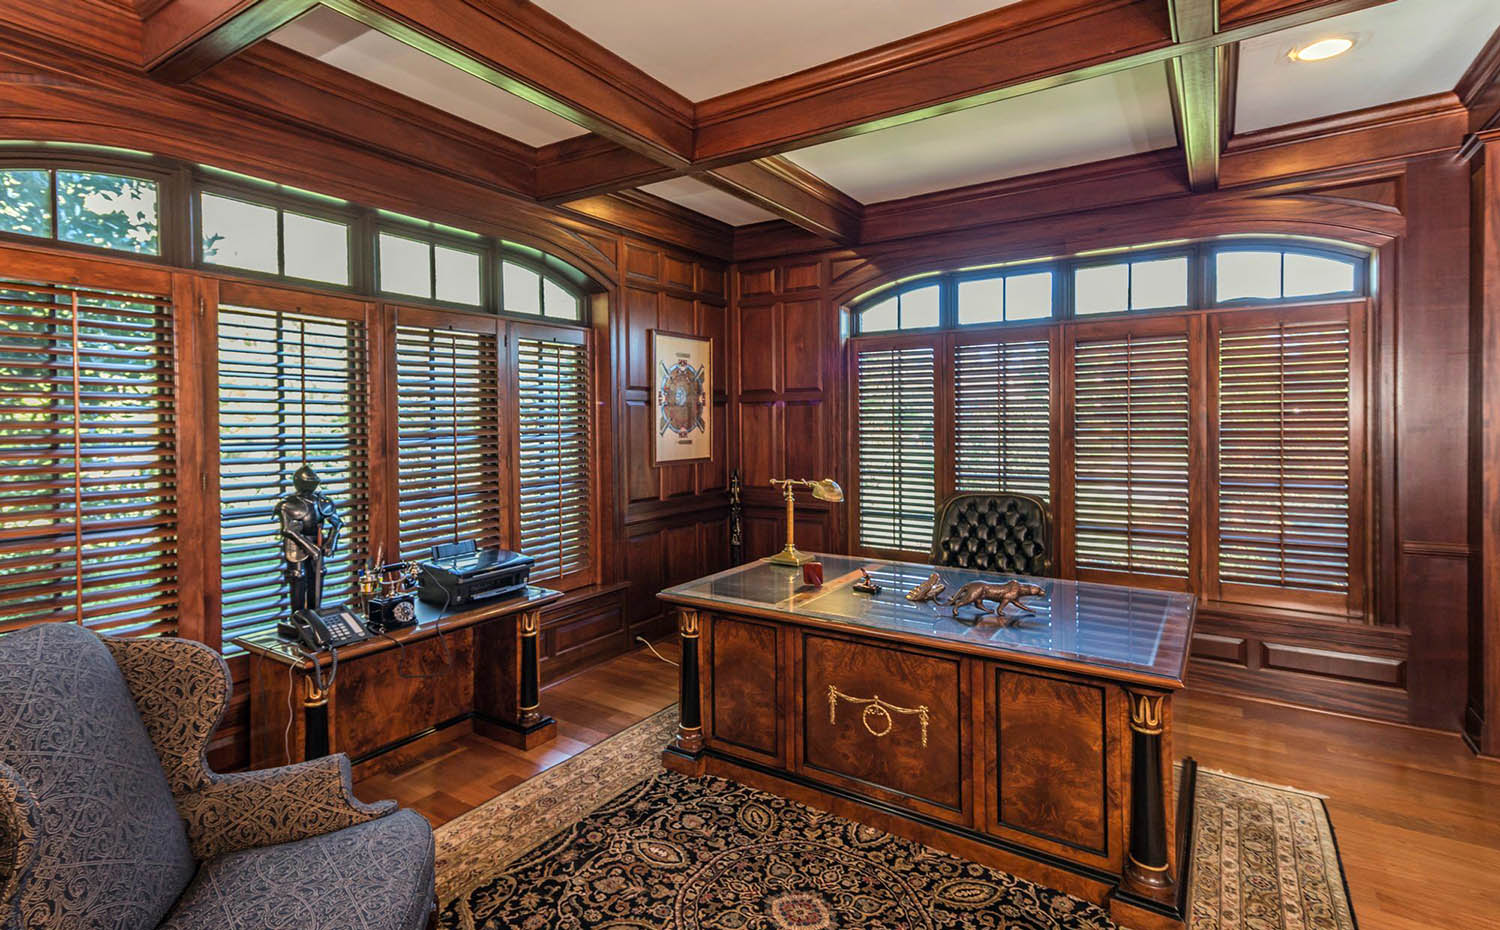 Wood walls and coffered ceiling stained medium brown. Matching hardwood floors.